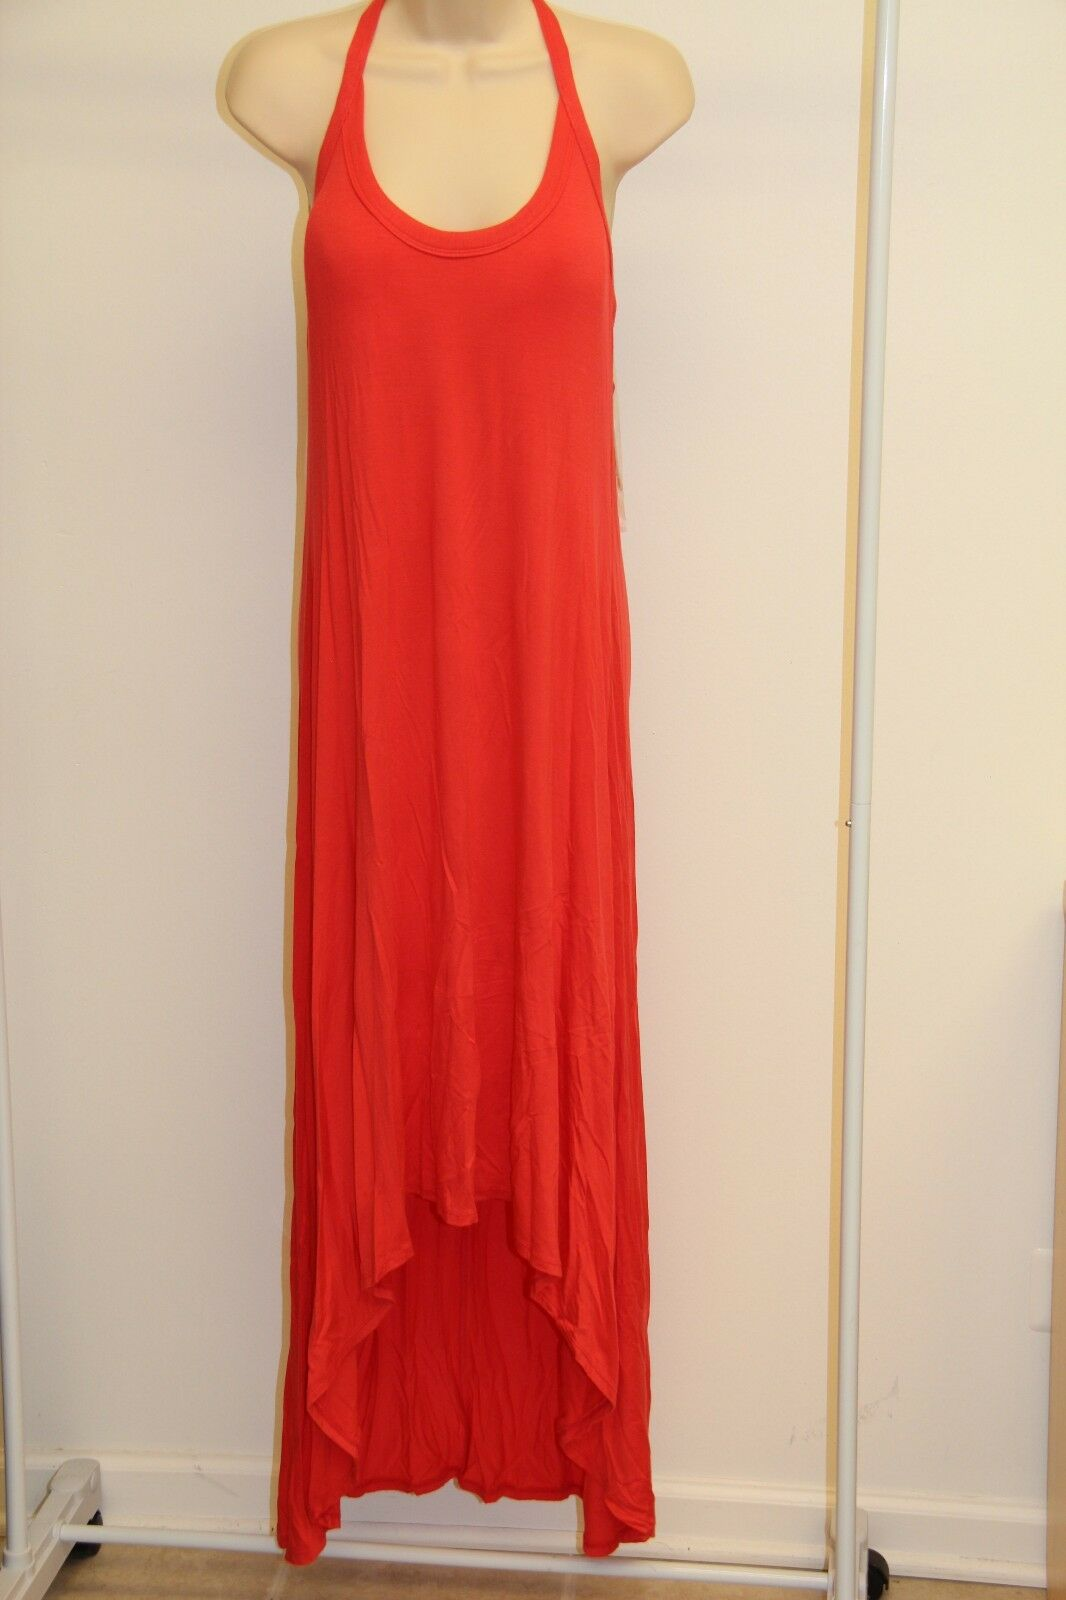 NWT Robin Piccone Swimsuit Cover Up Maxi Dress Sz L GER  138